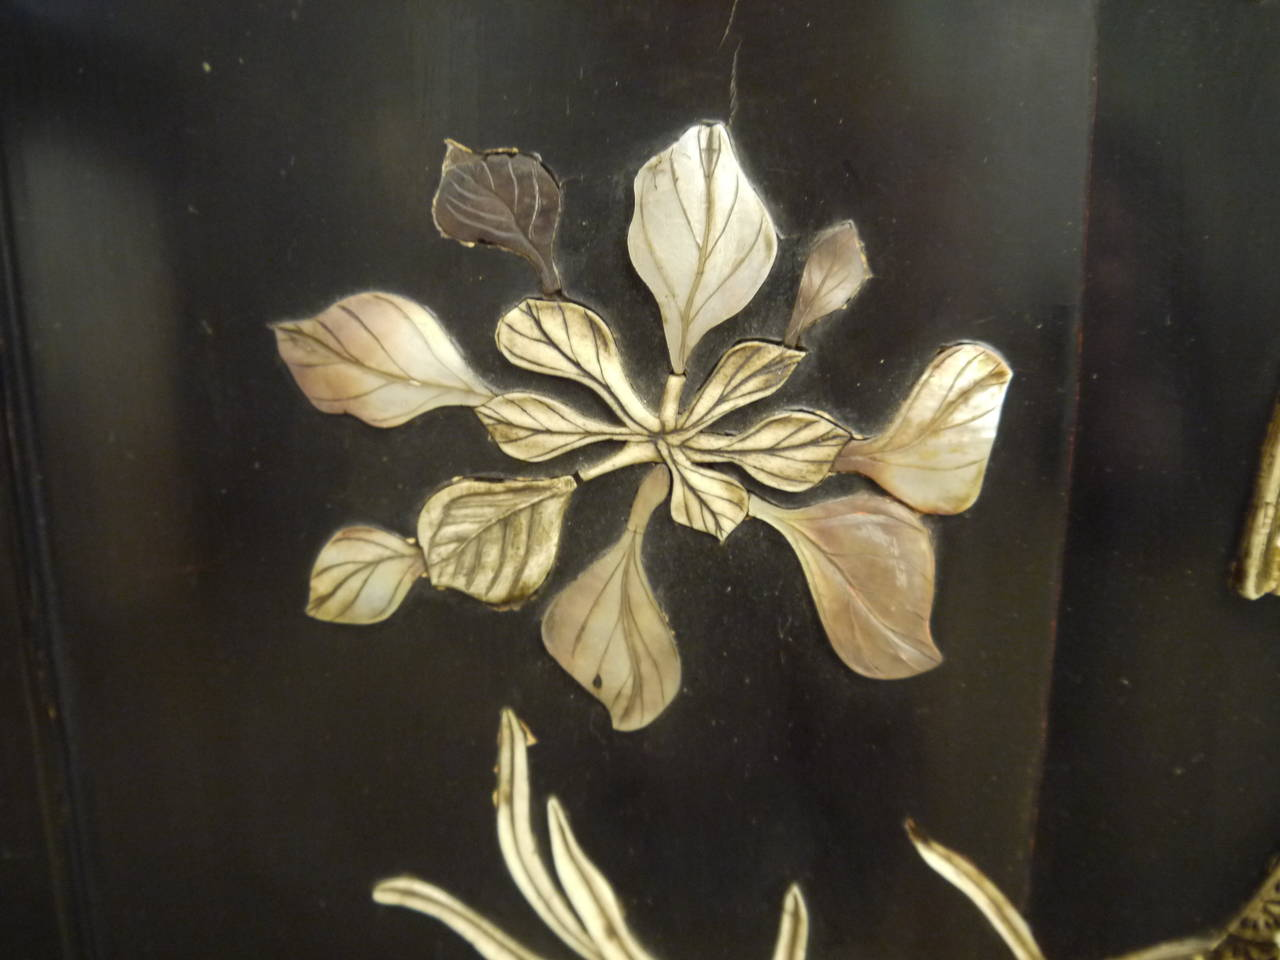 Large Lacquer Panel with Carp In Good Condition For Sale In New York, NY